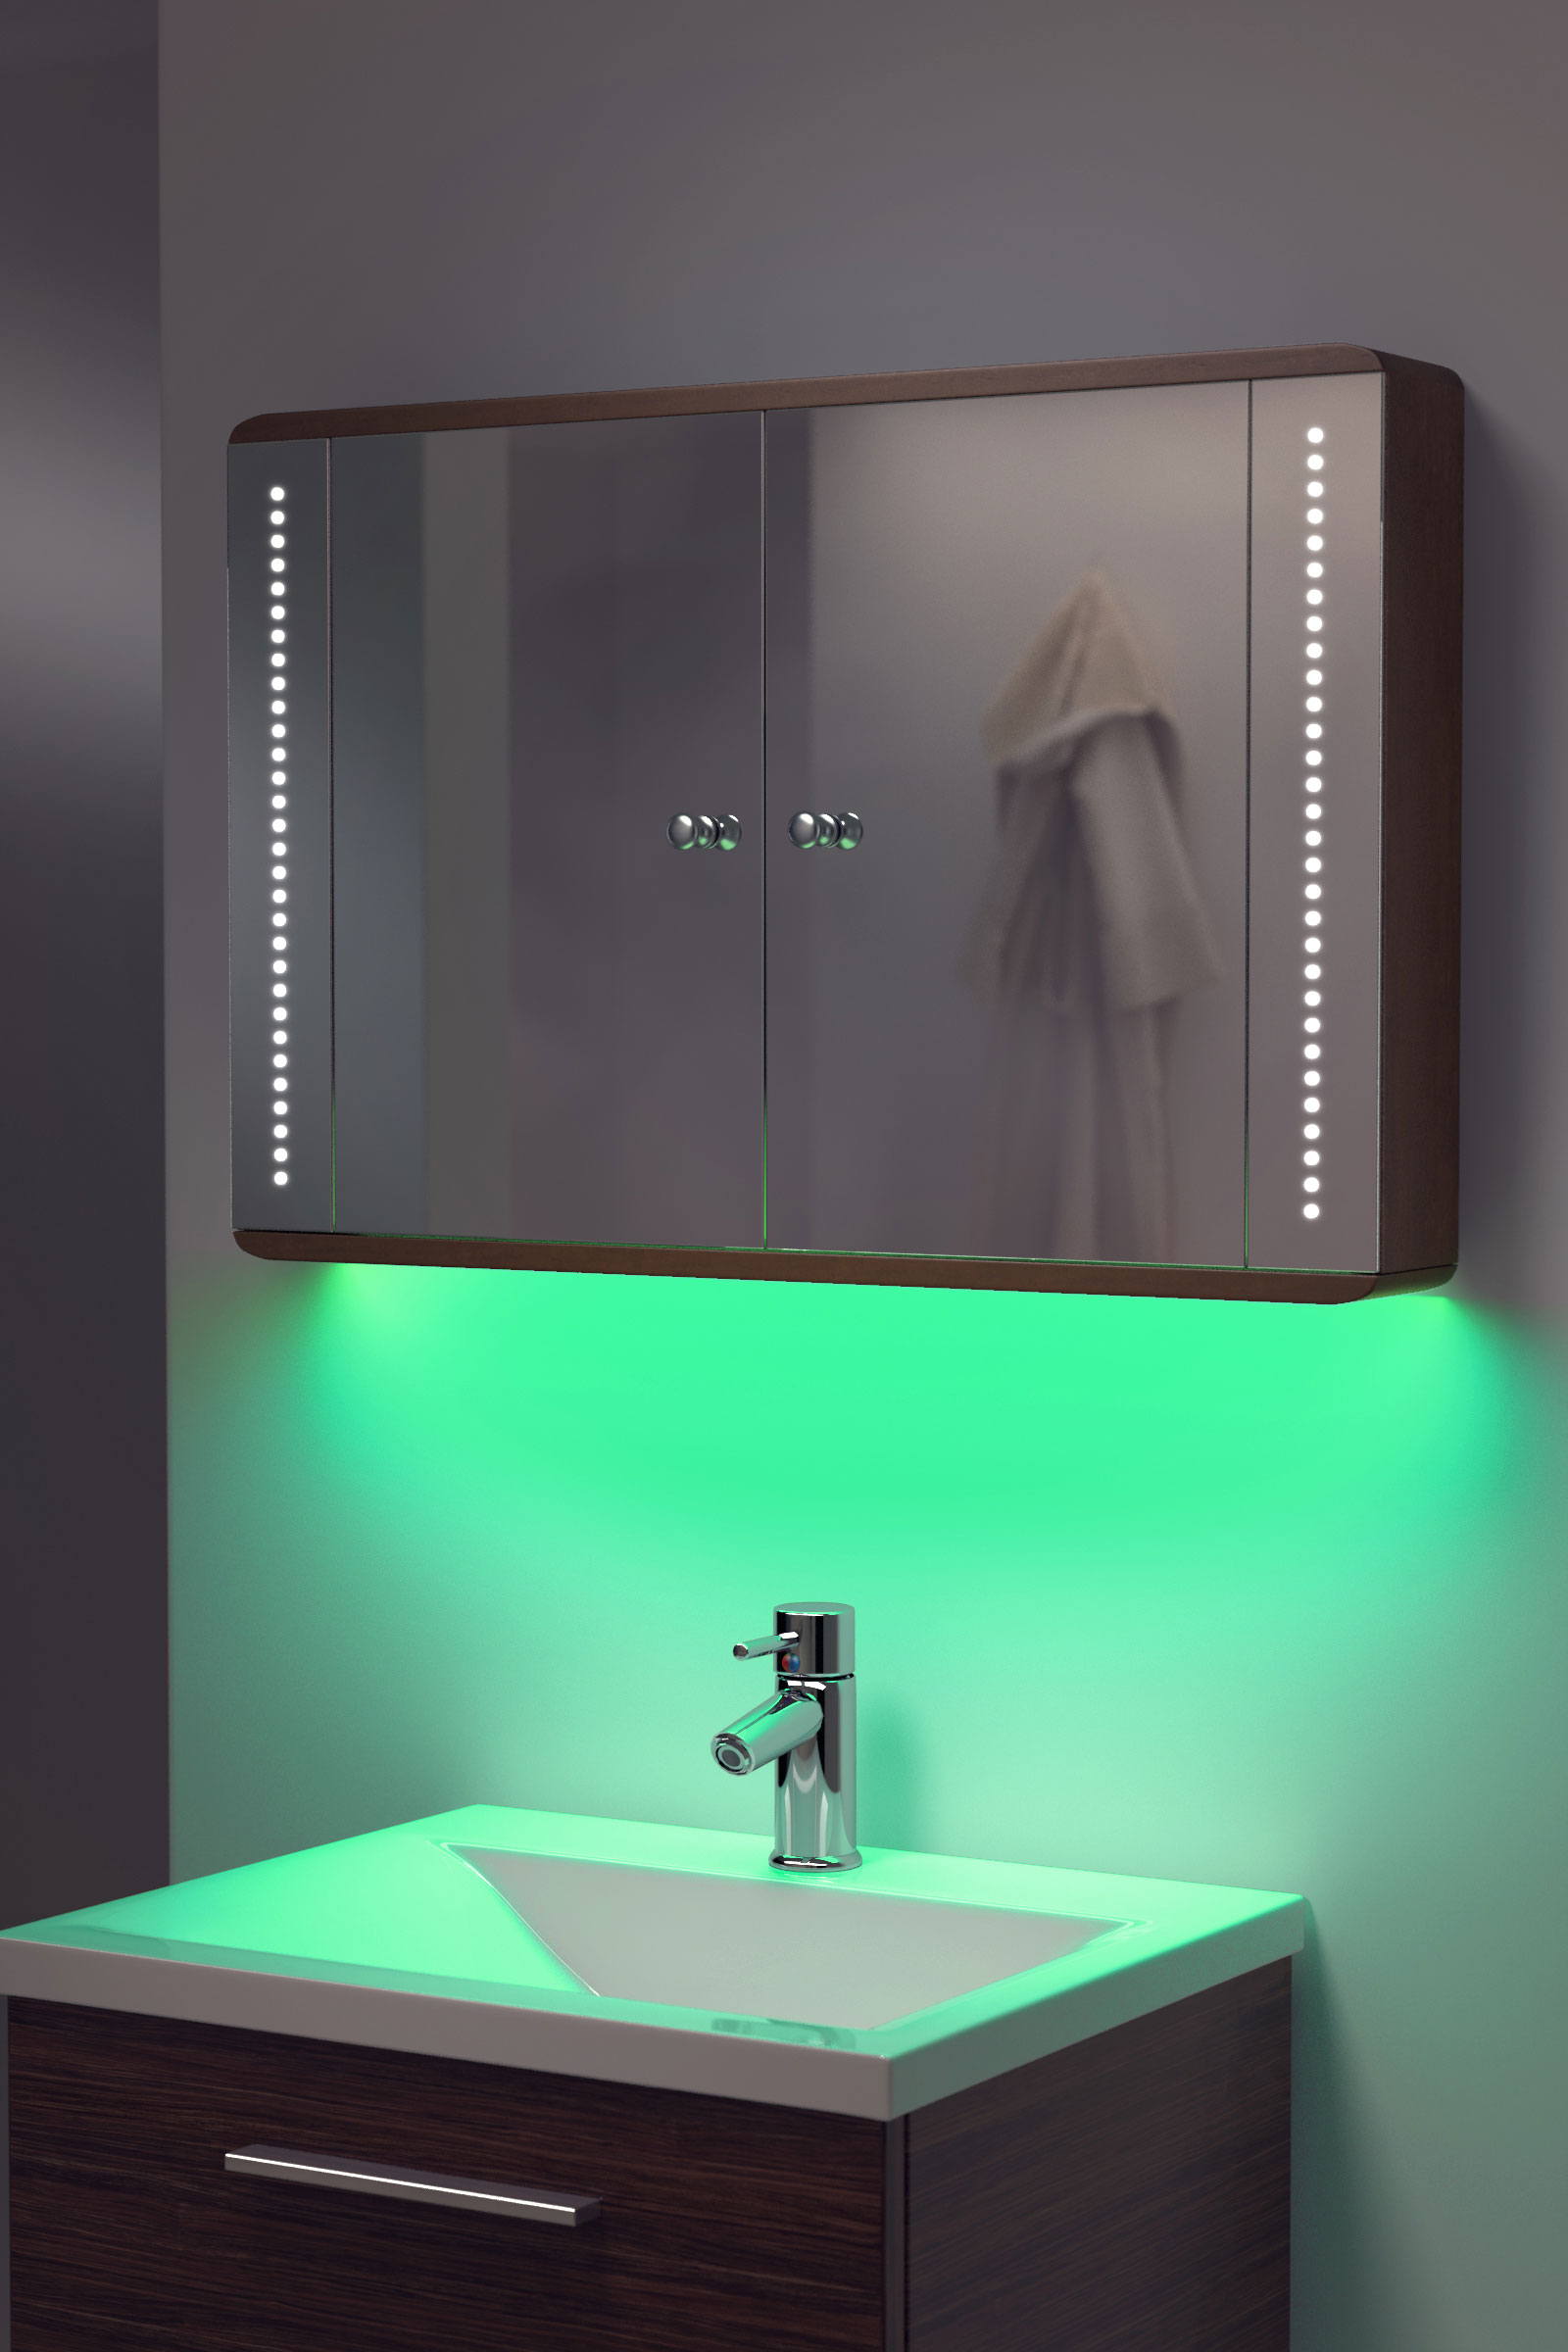 Bathroom mirror cabinets with light and shaver socket - Bathroom Cabinet Shaver Point Themayohome Com